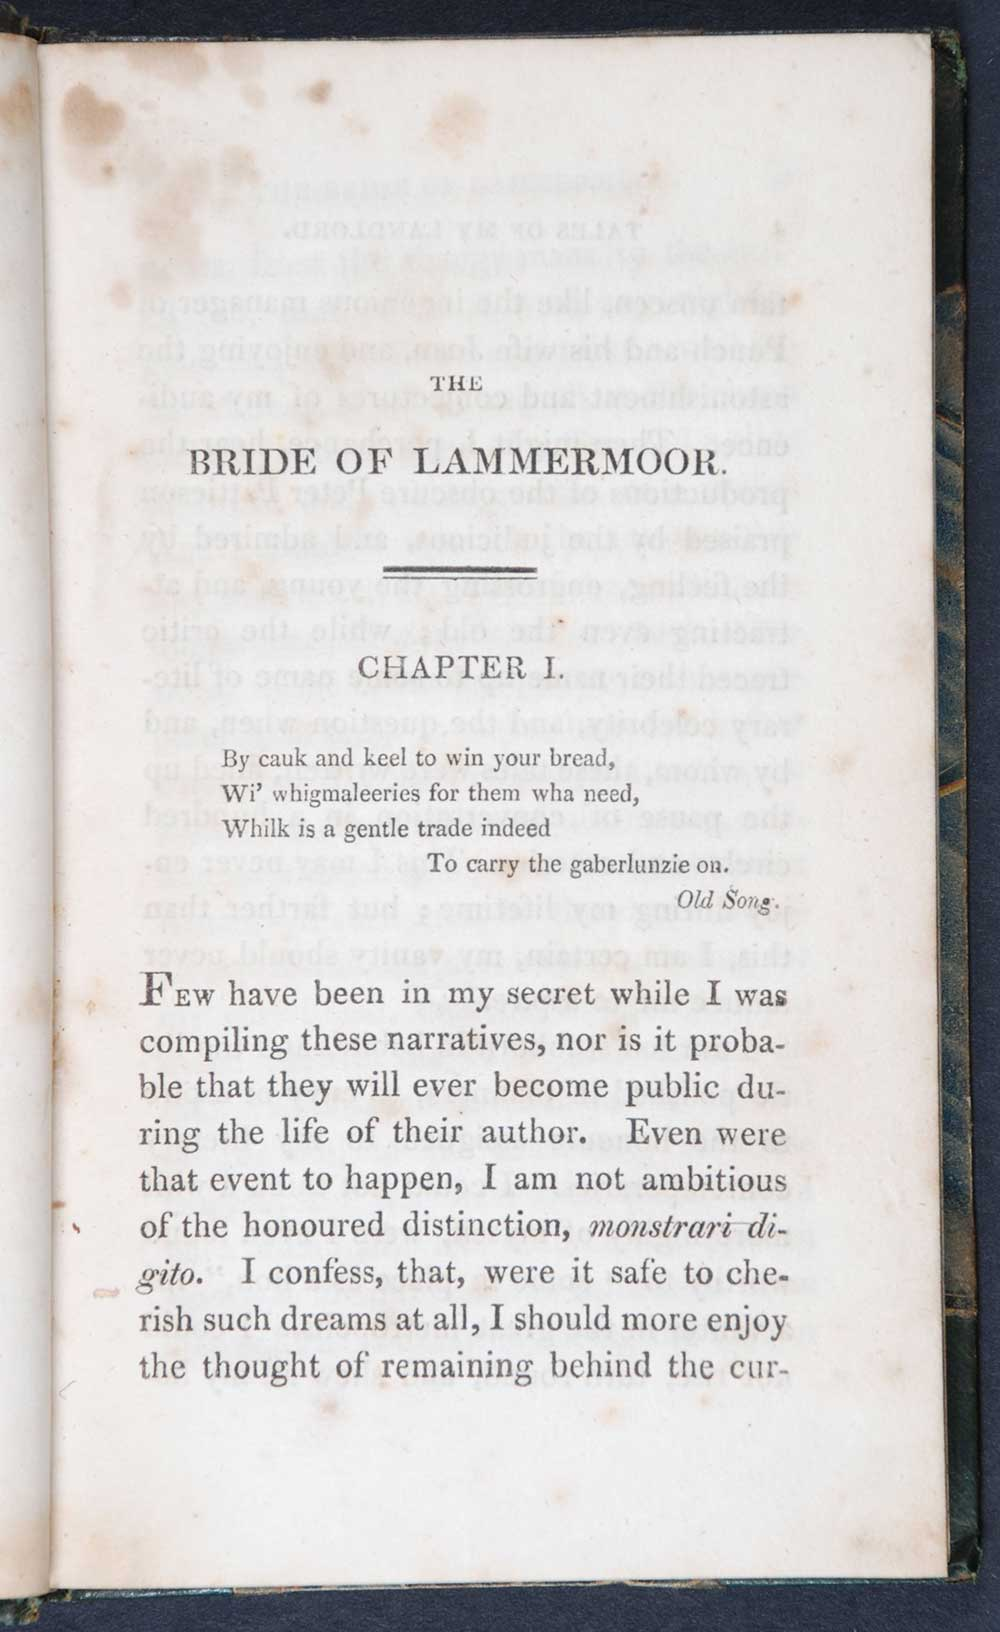 [Sir Walter Scott]. <em>Tales of my landlord: third series.</em> [1st edition]. Edinburgh: Printed for Archibald Constable and Co., Edinburgh; Longman, Hurst, Rees, Orme and Brown … ; and Hurst, Robinson and Co., London, 1819. Four volumes; Vol. 1 displayed.